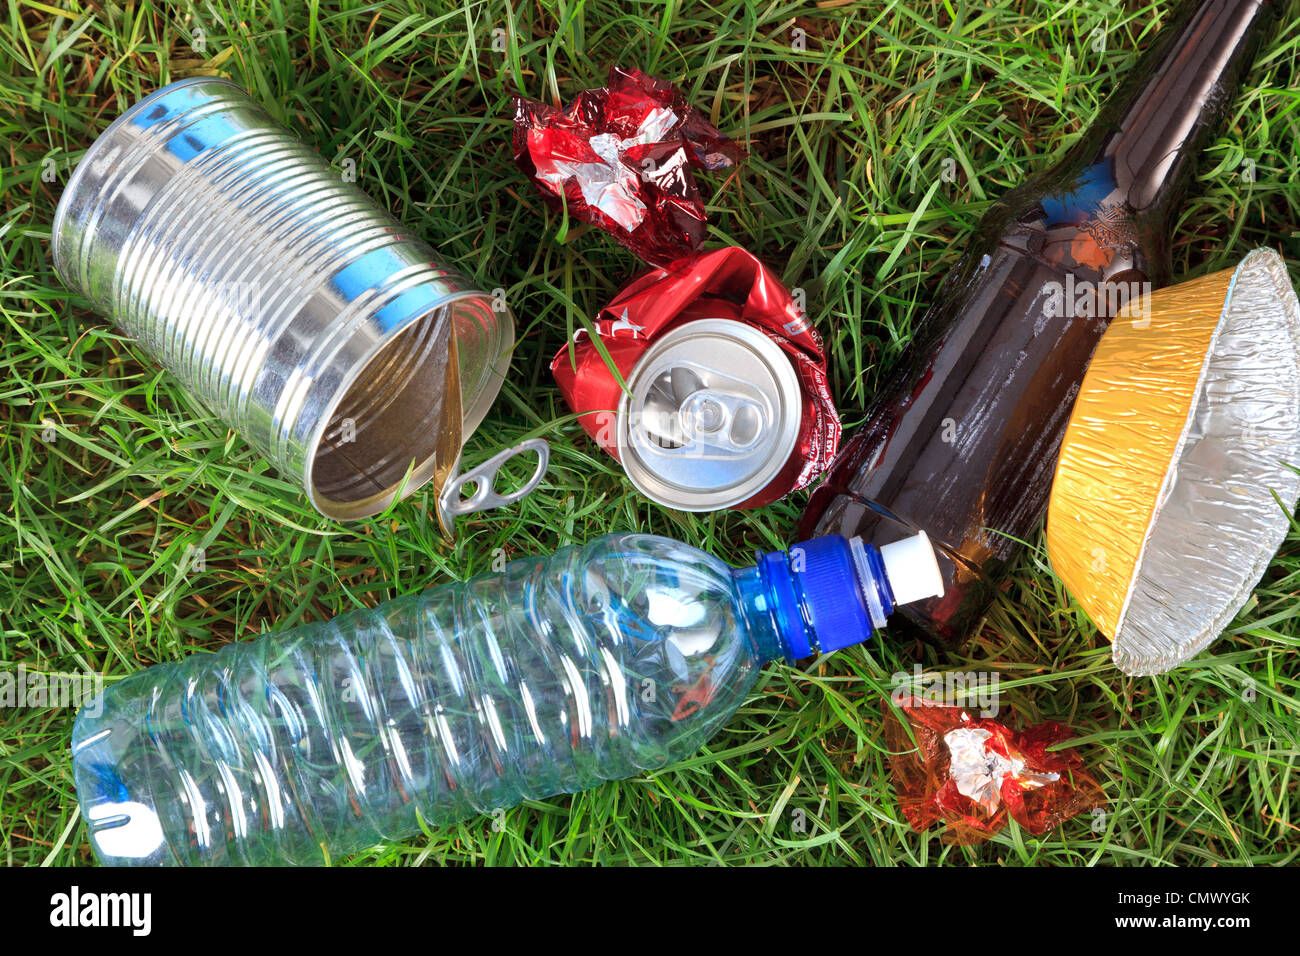 Photo of litter on grass, bottles, cans and wrappers. - Stock Image